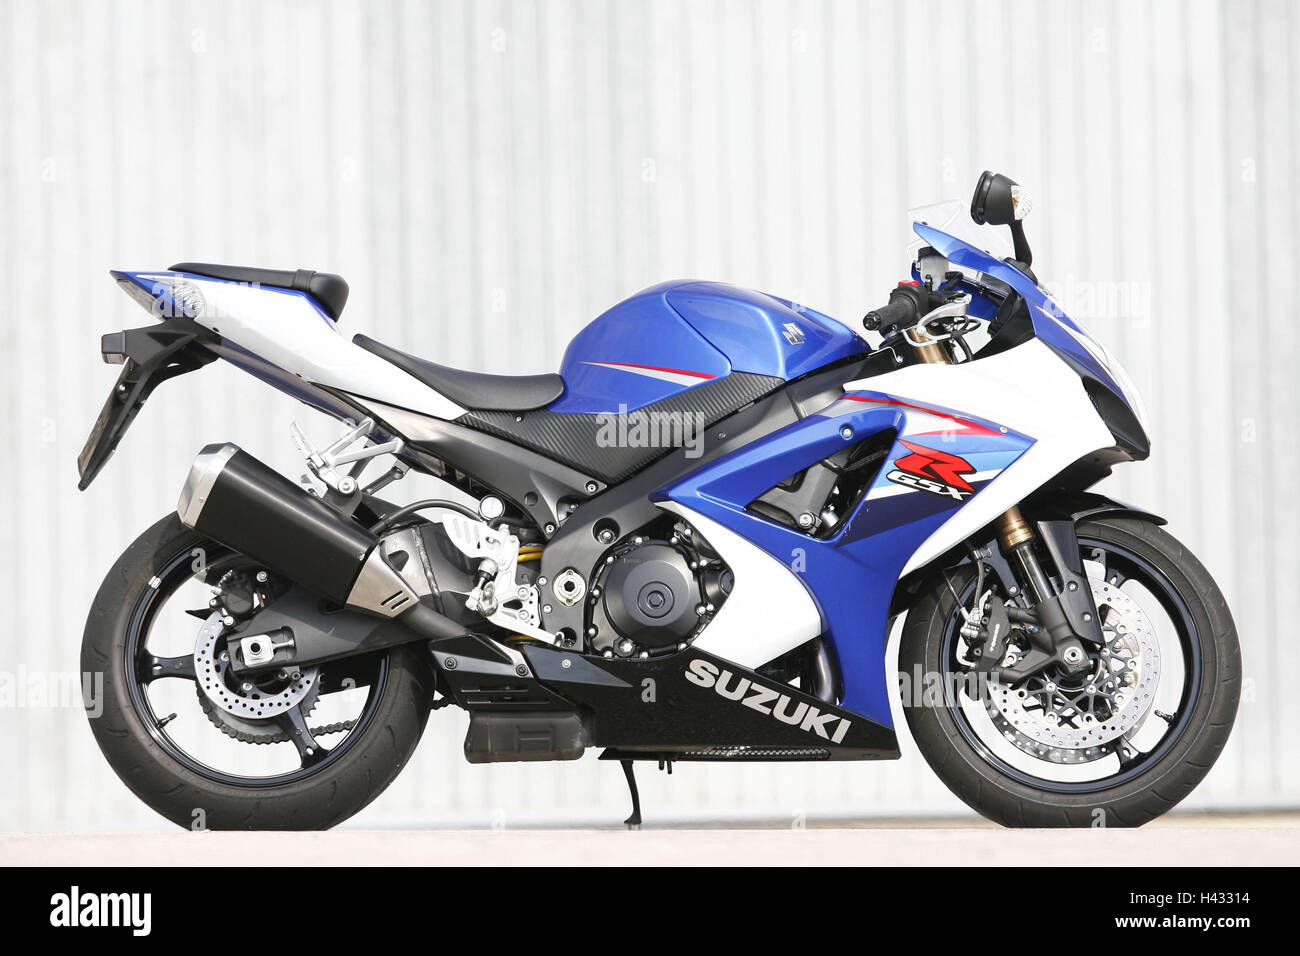 Motorcycle, Suzuki GSX-R, 1000th comparative test - Stock Image